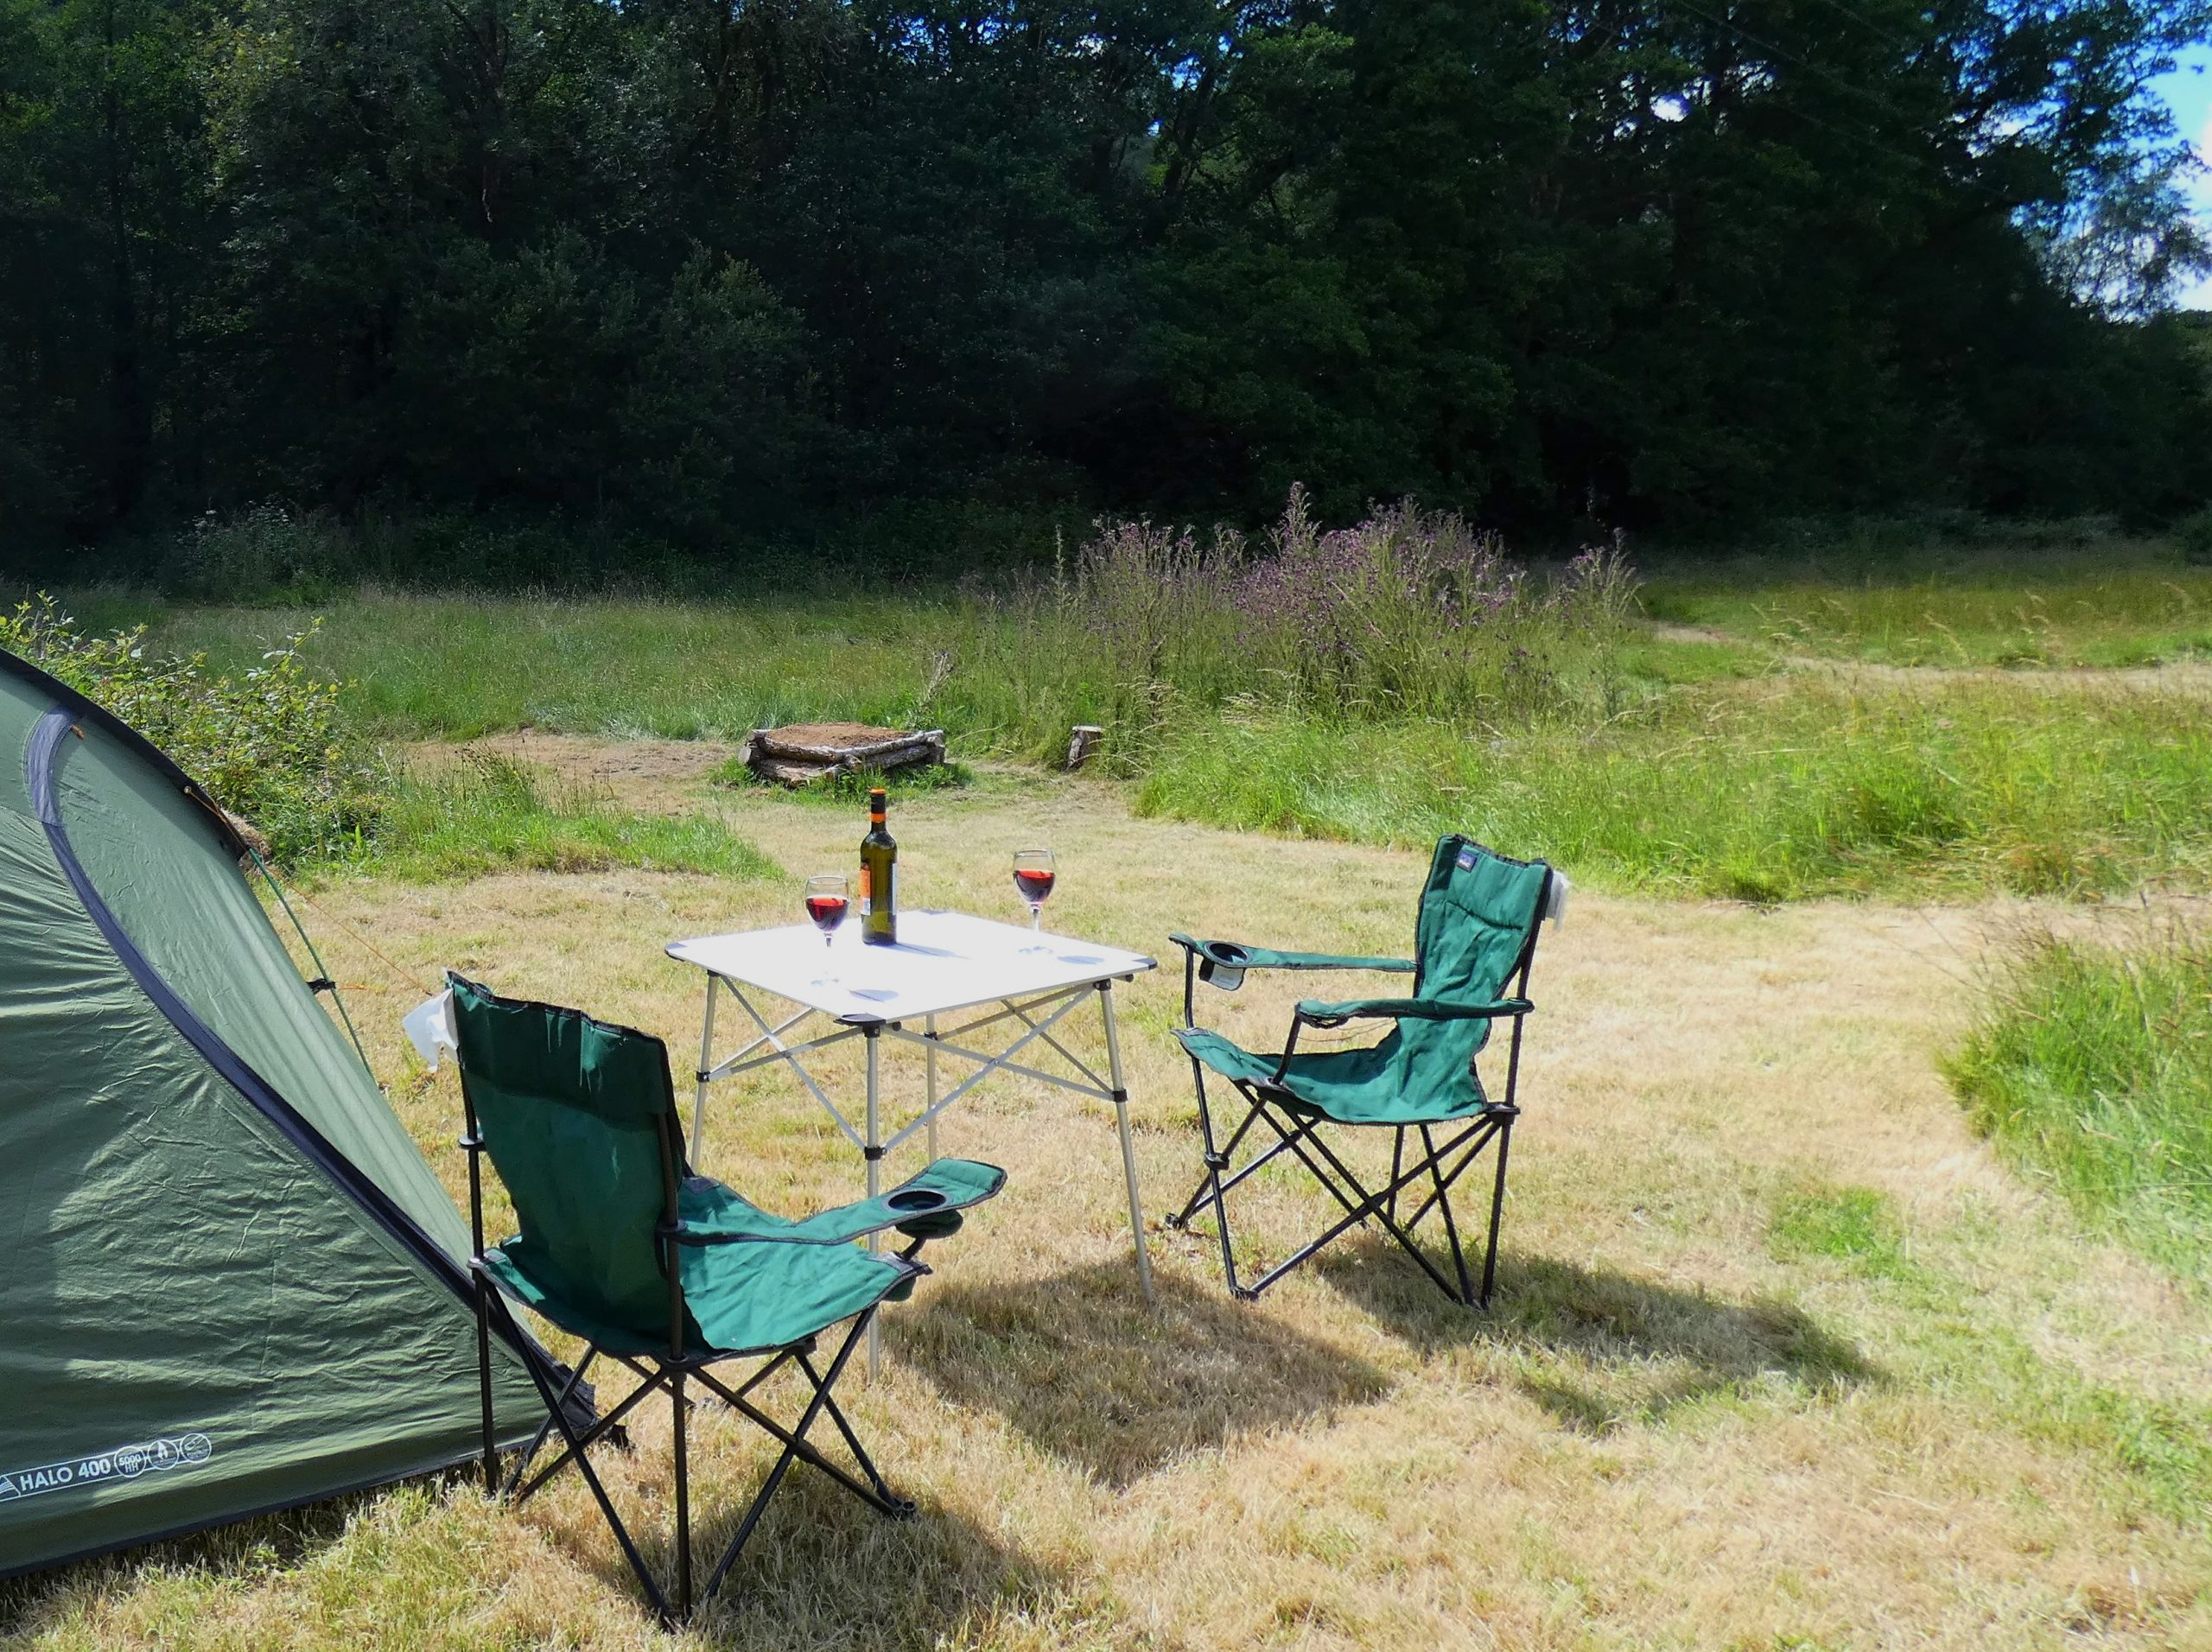 tent, table, wine, campsite, campfire, woods